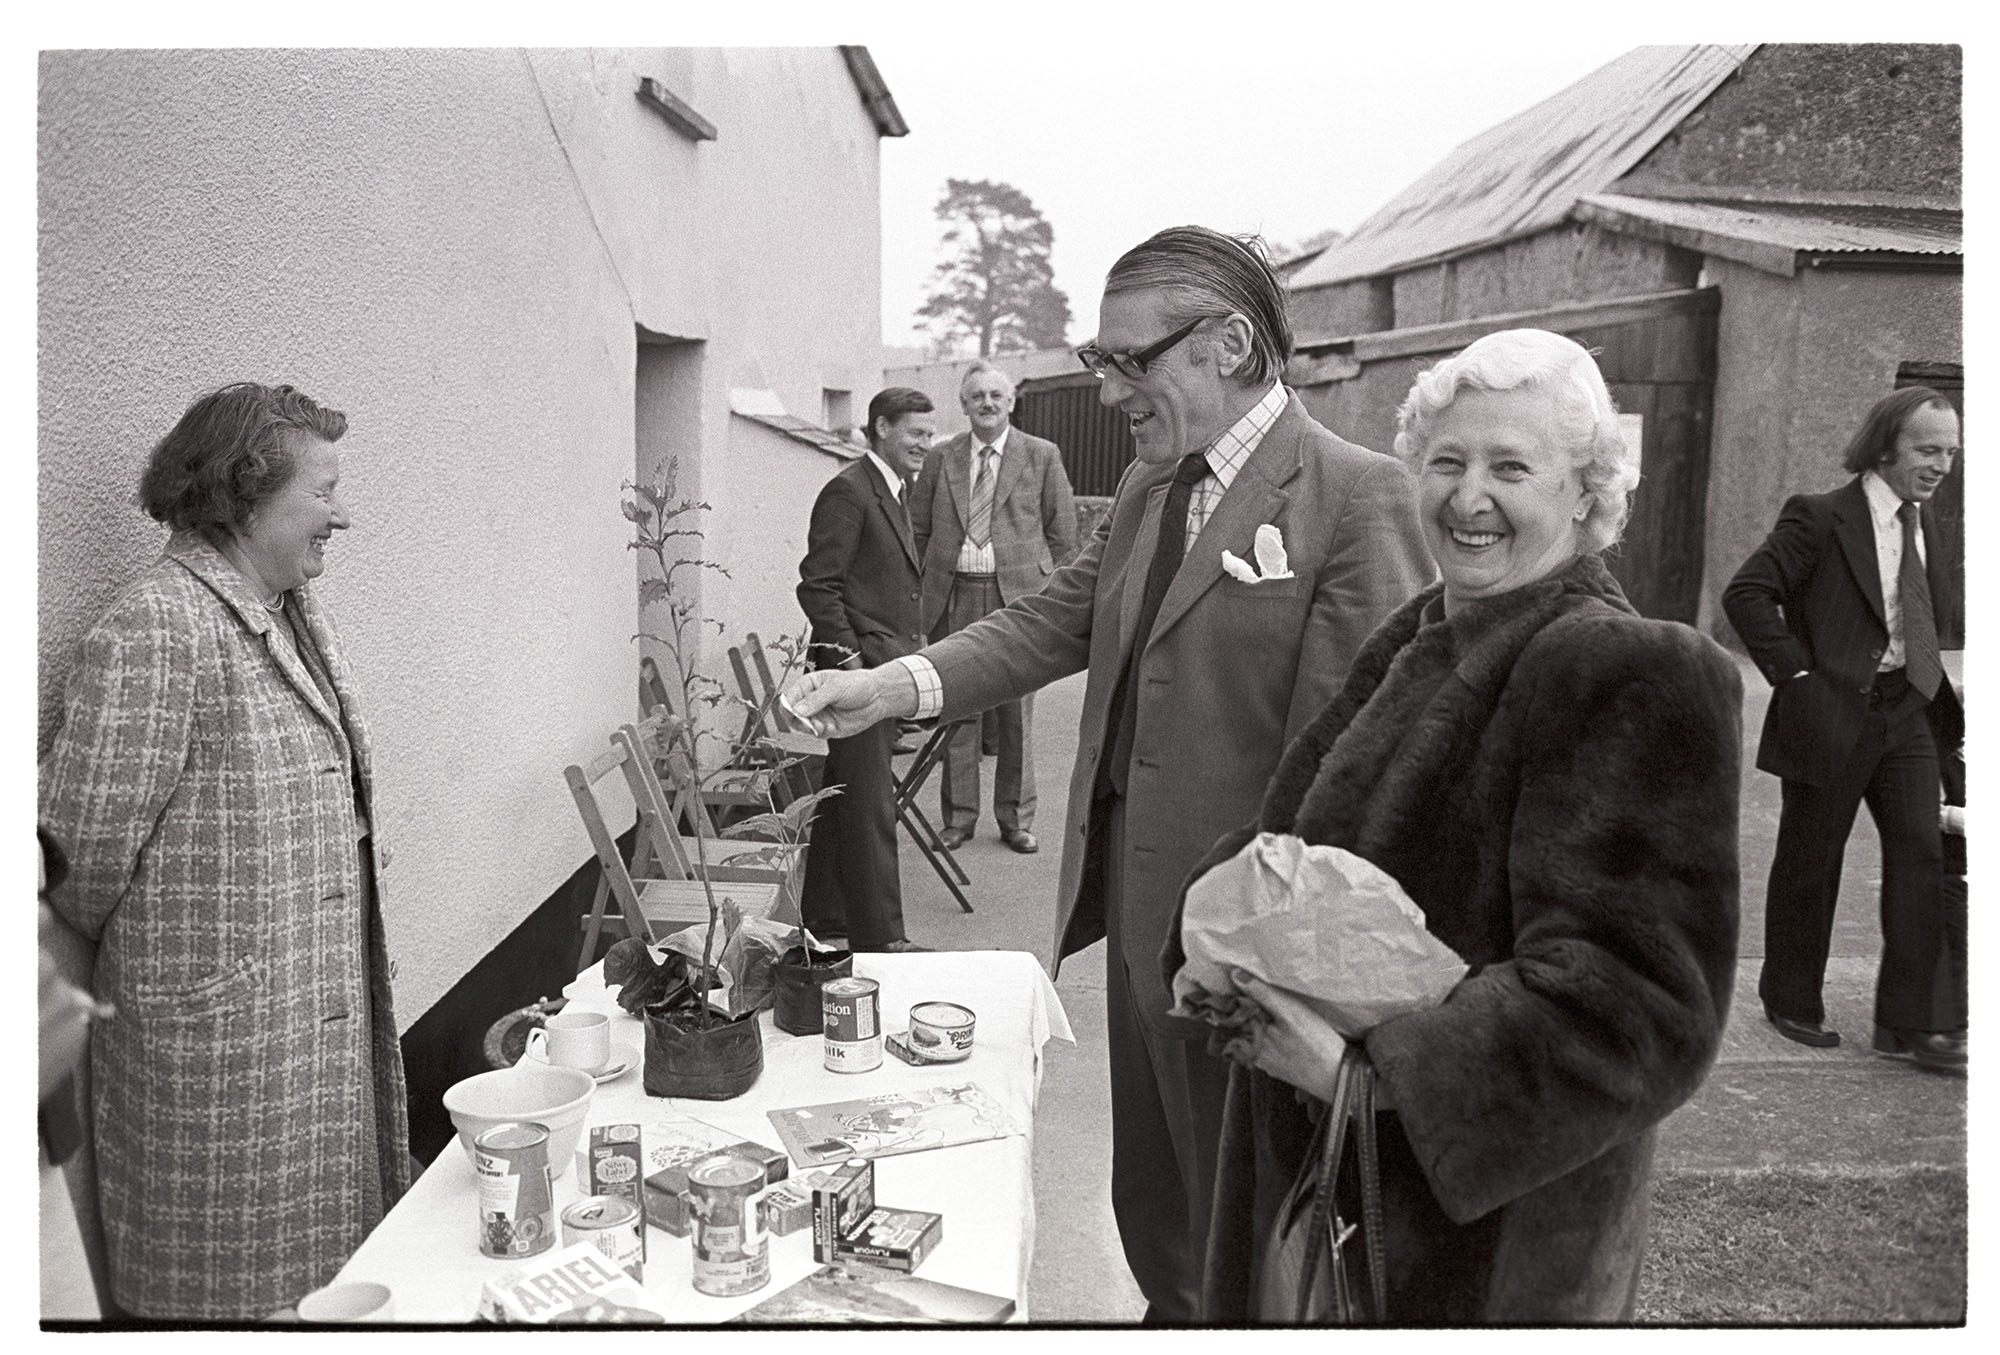 Conservative Party fete at farm, MP and woman at produce stall. <br /> [Peter Mills MP and a woman looking at a plant on a stall at the Conservative Party Fete at great Cudworthy Farm, Dolton.]